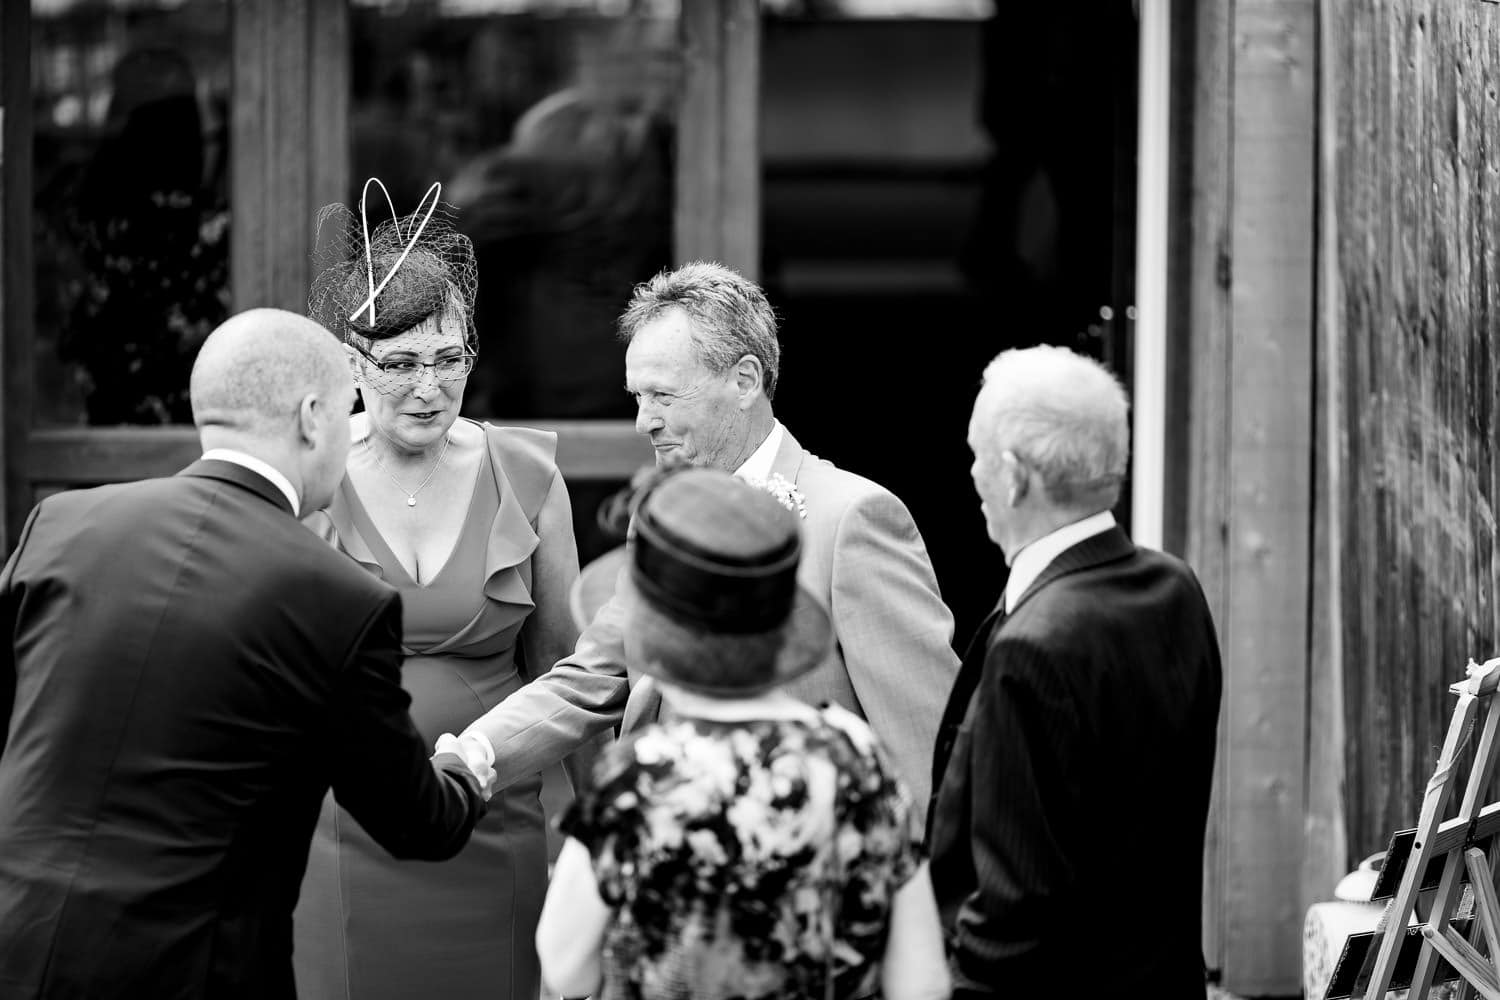 The Granary at Fawsley Wedding guests shake hands before the wedding ceremony in northamptonshire